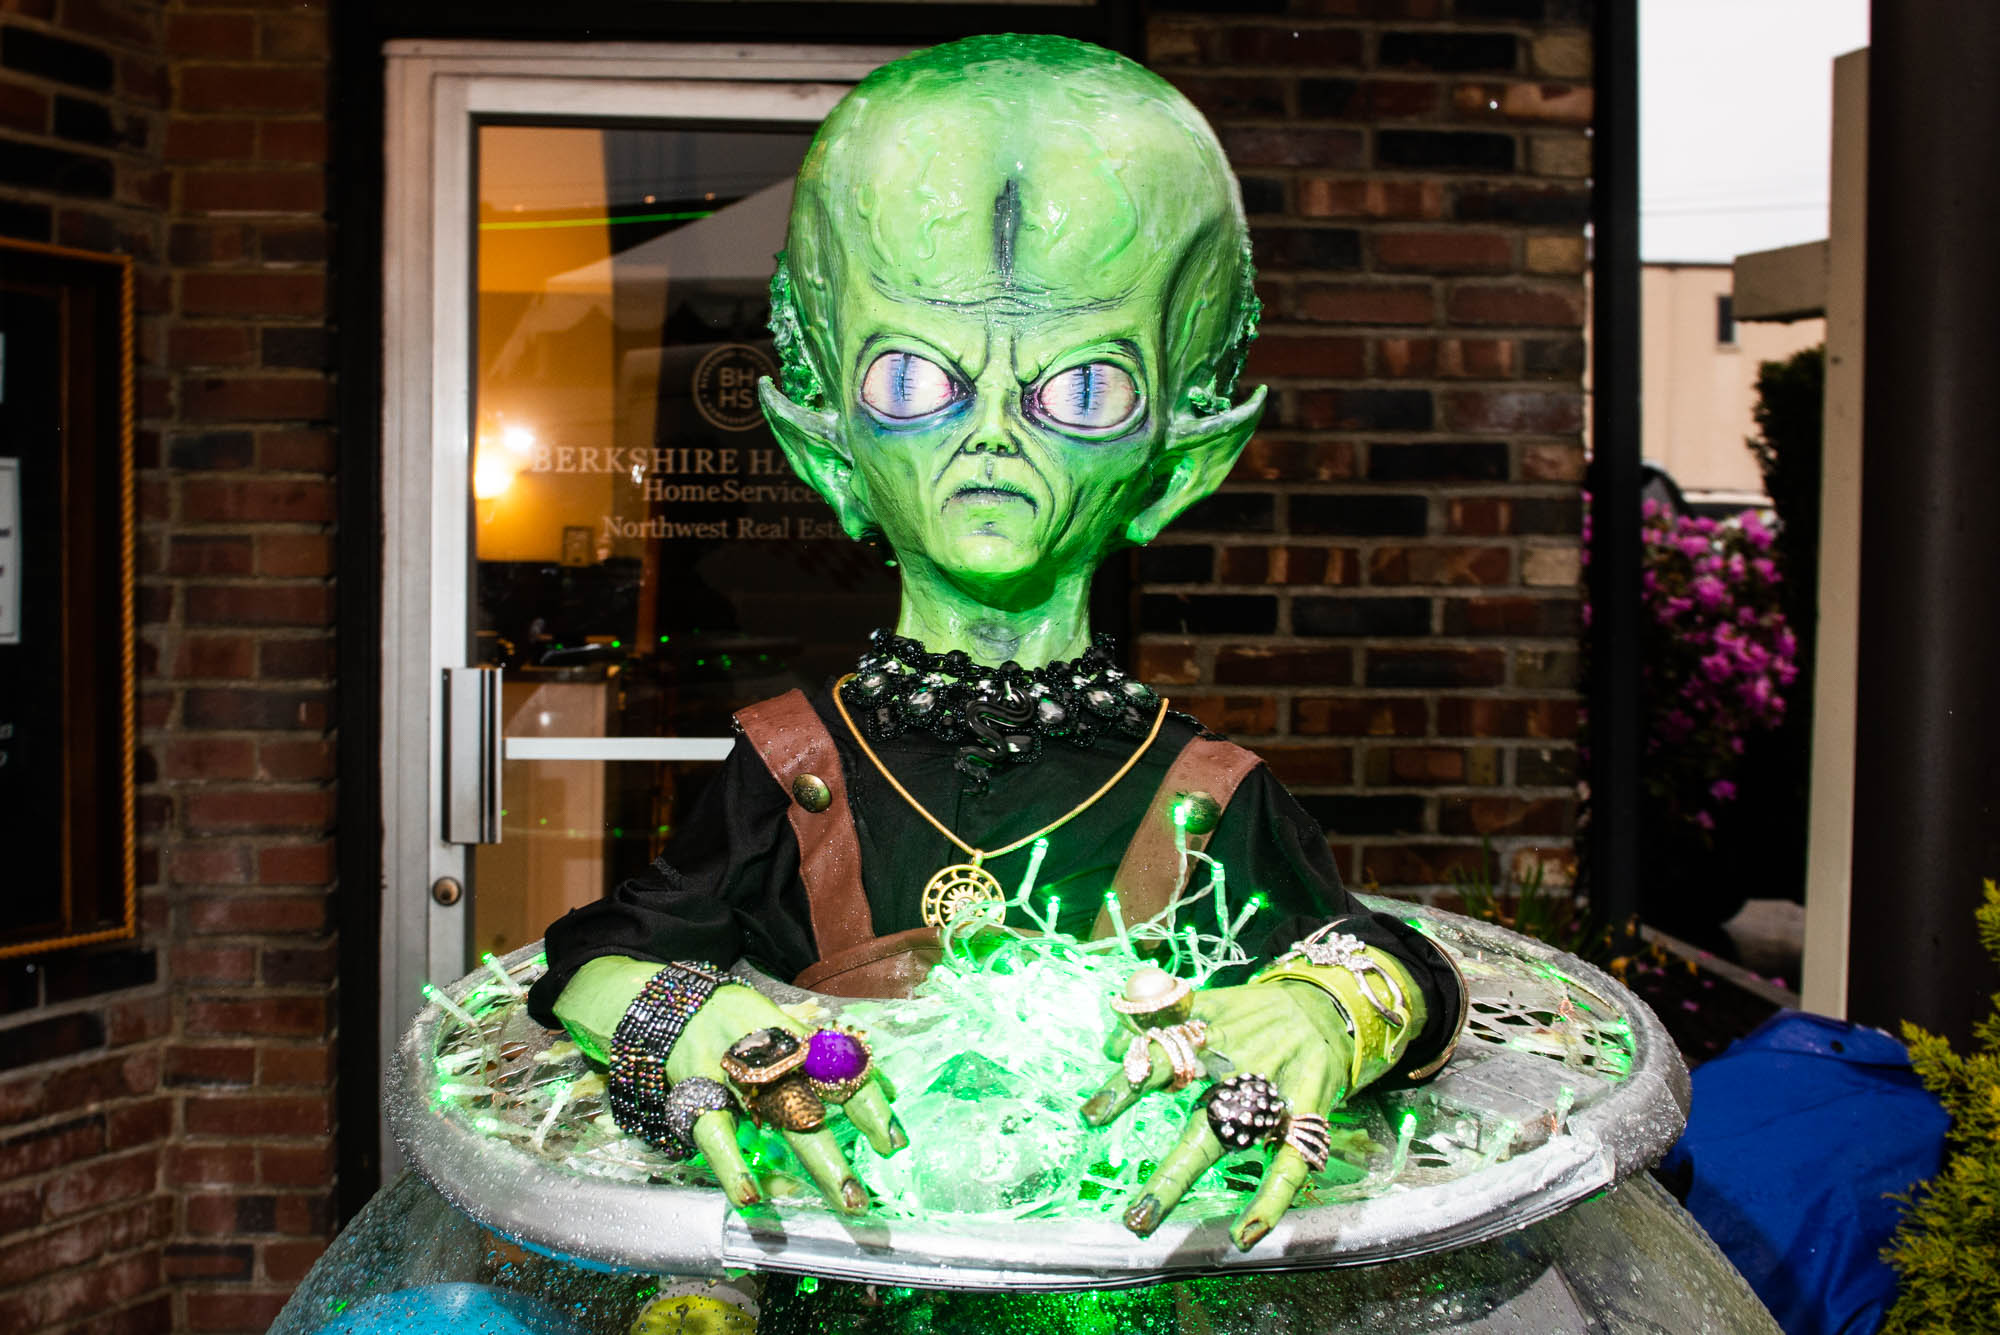 After a brief hiatus, the Burien UFO Festival made its descent into Olde Burien last night. Despite the blustery weather, the rain certainly didn't discourage UFO enthusiasts. Along with local businesses and a solid selection of food trucks, a giant UFO cake was on display for everyone to photograph and sample.{ } Click on for photos from the fun family friendly event. (Image: Chona Kasinger / Seattle Refined)